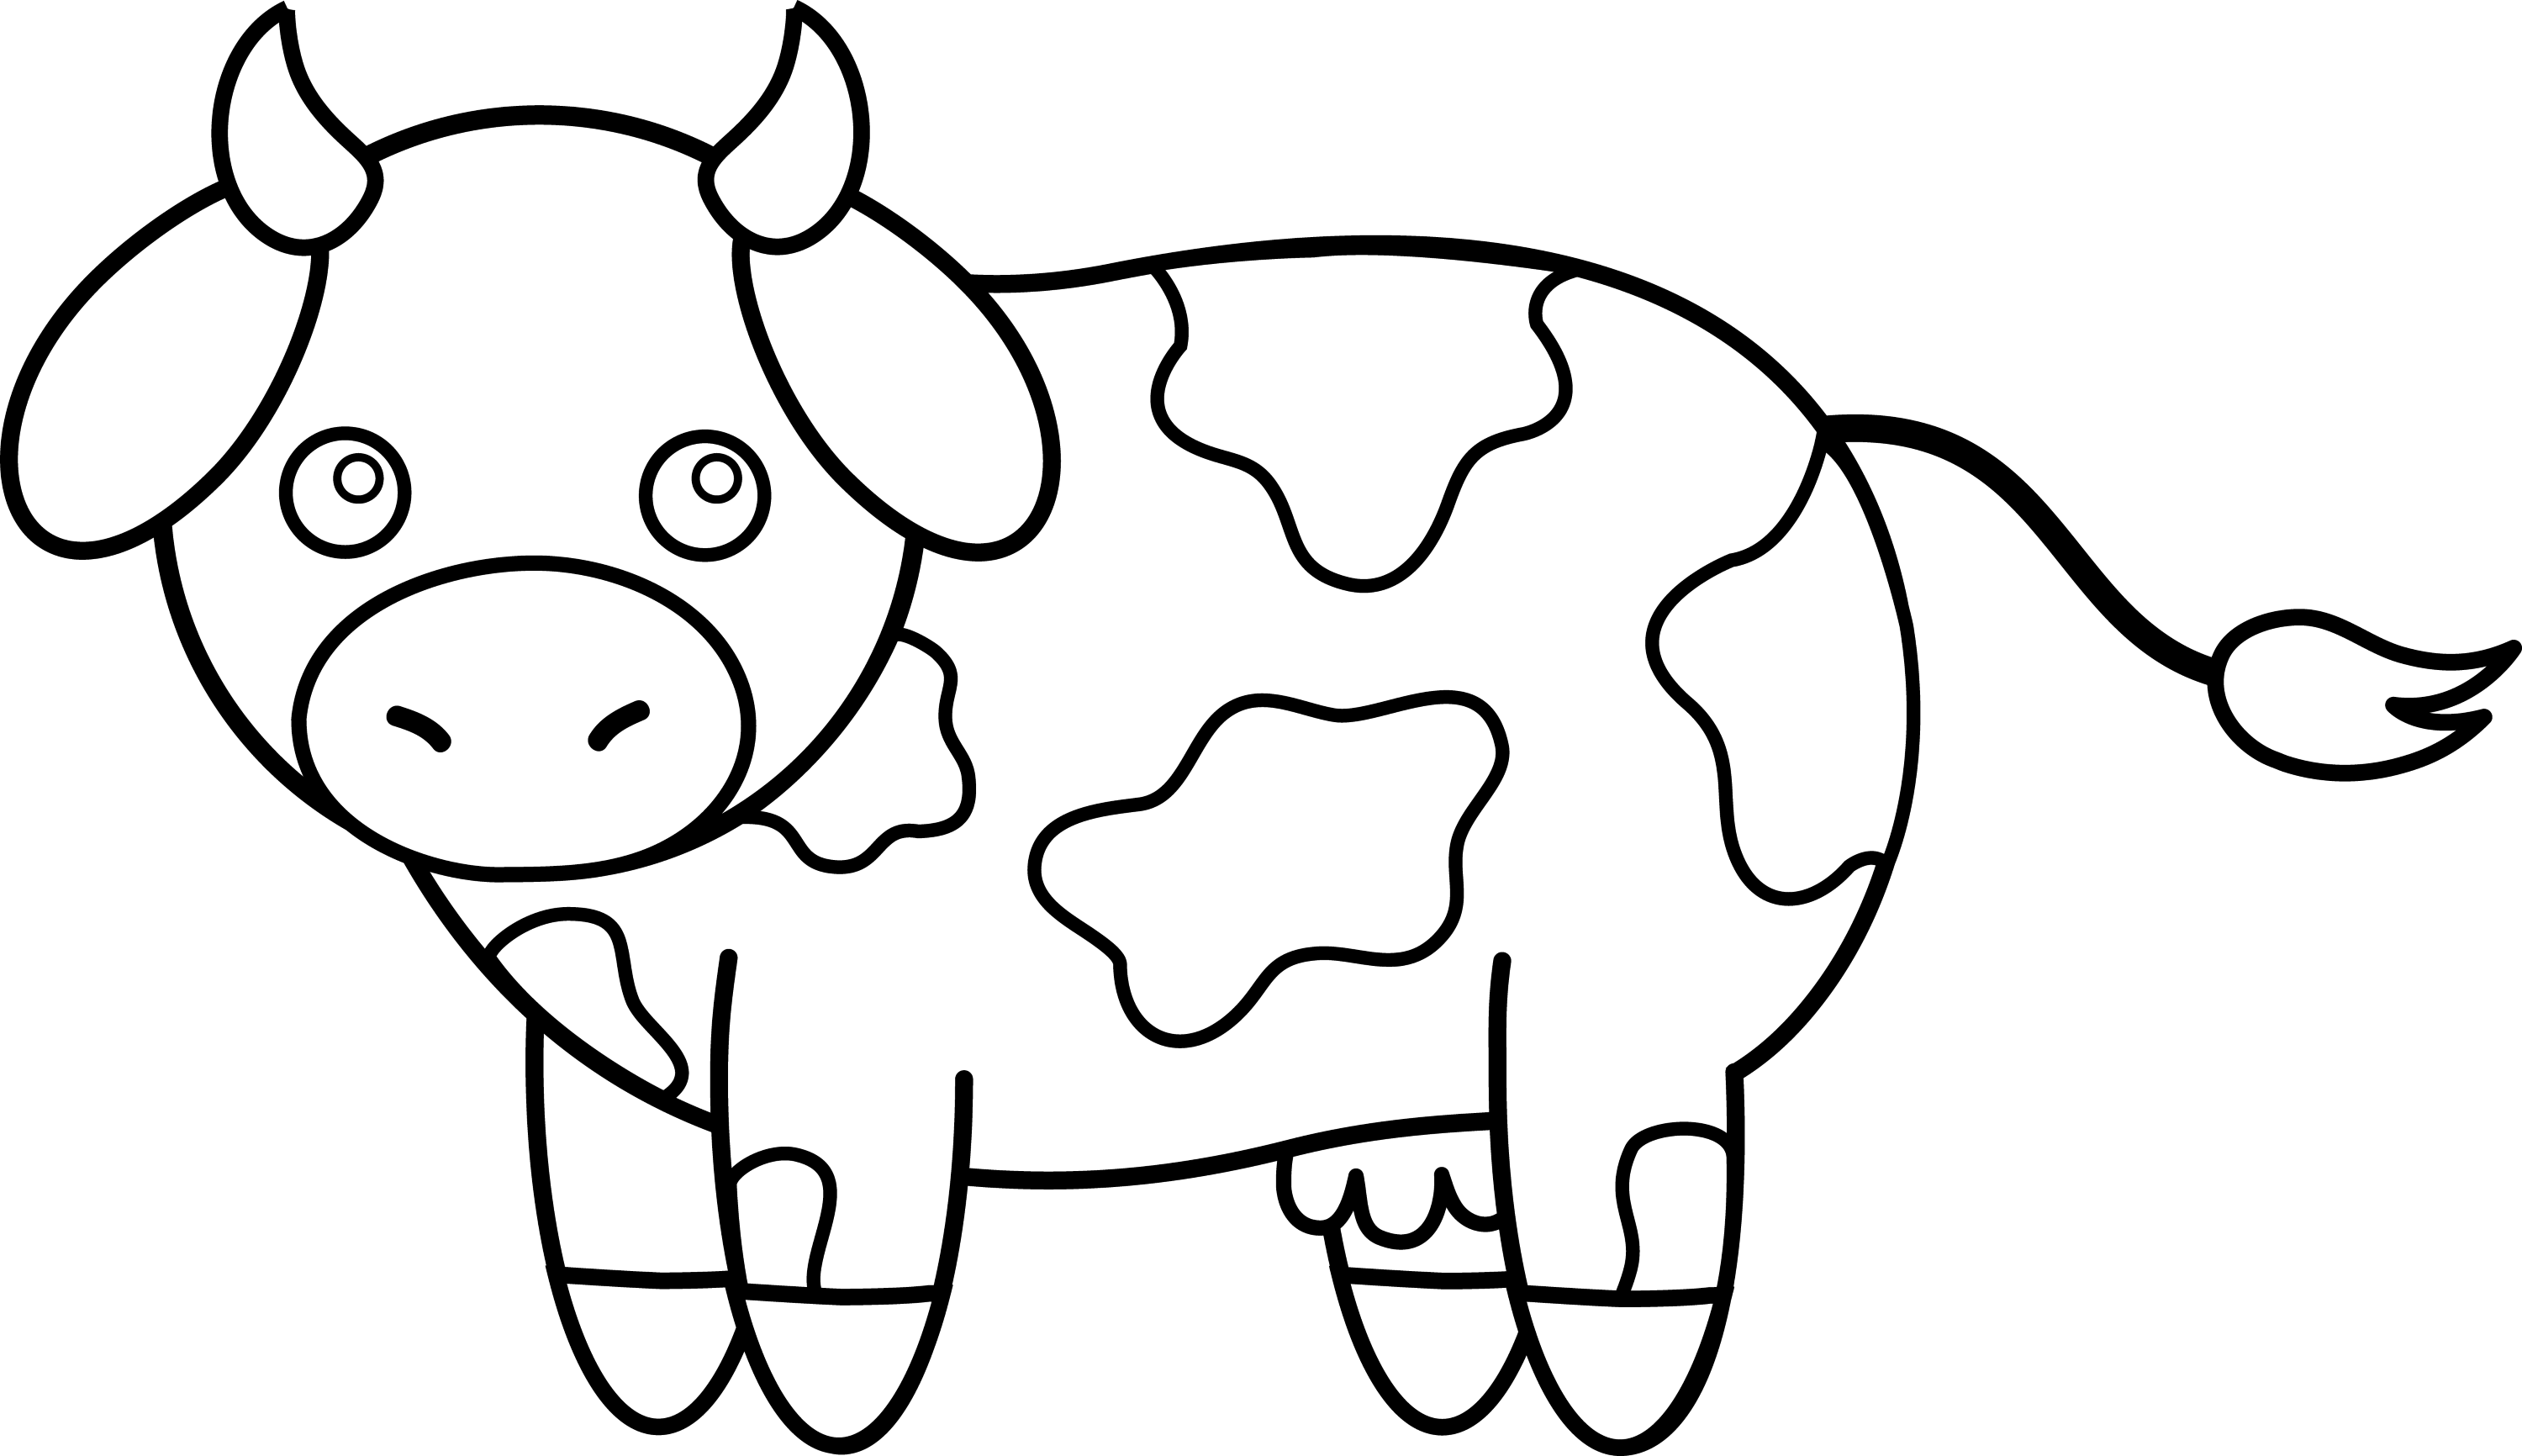 cow pictures to color free easy to print cow coloring pages cow coloring pictures to cow color